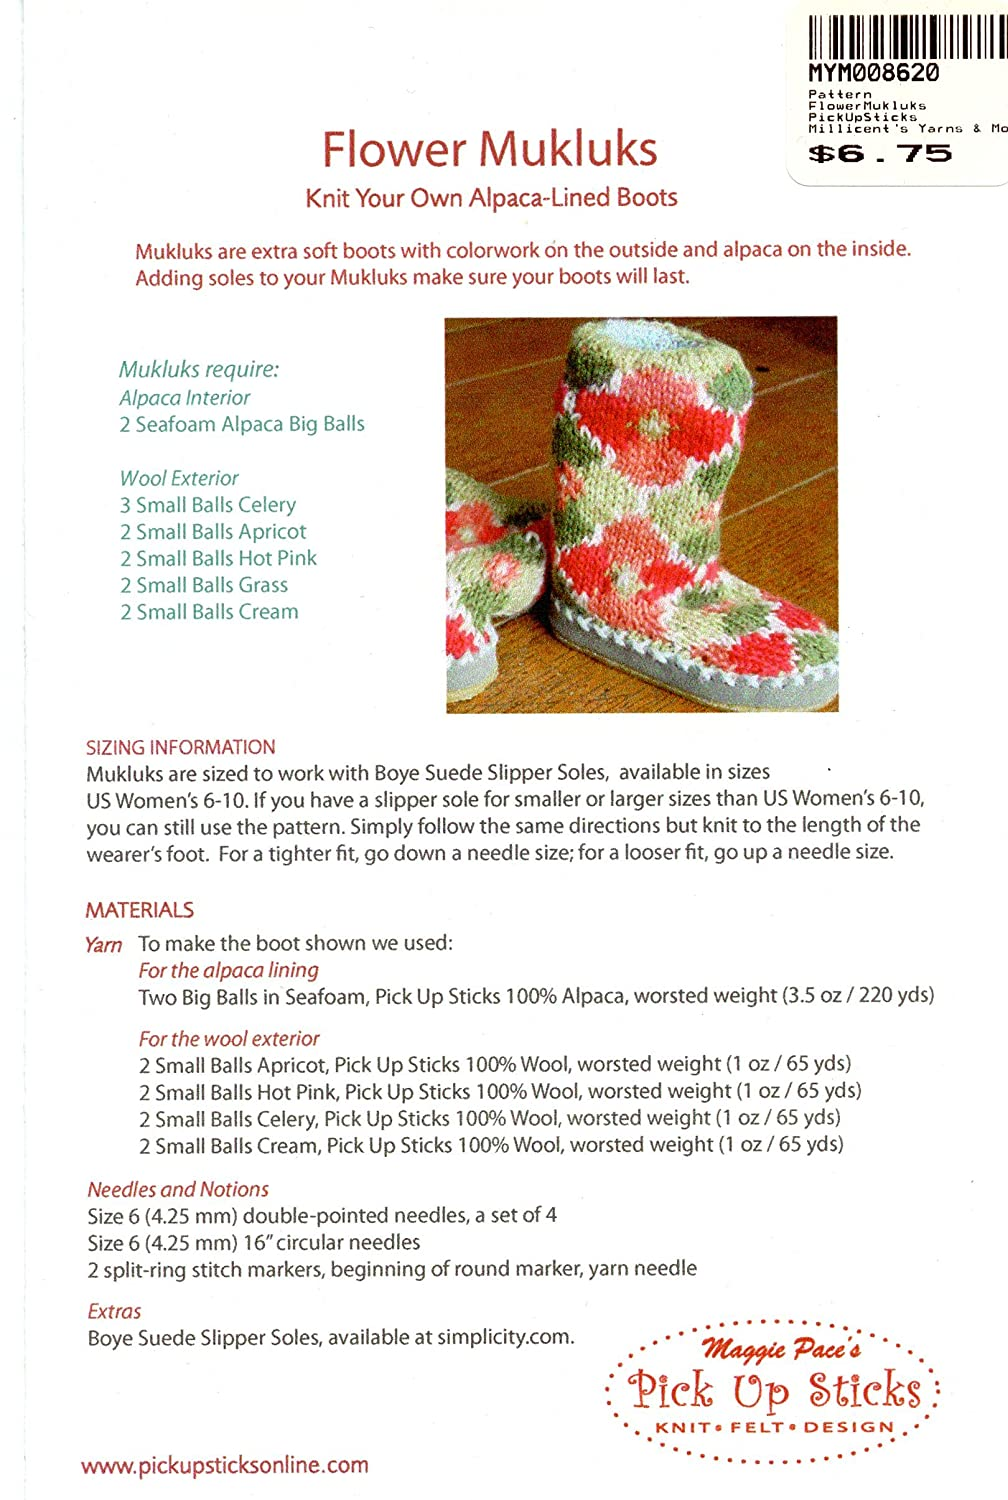 Amazon.com: Flower Mukluks: Knit Your Own Alpaca-Lined Boots - Pick ...